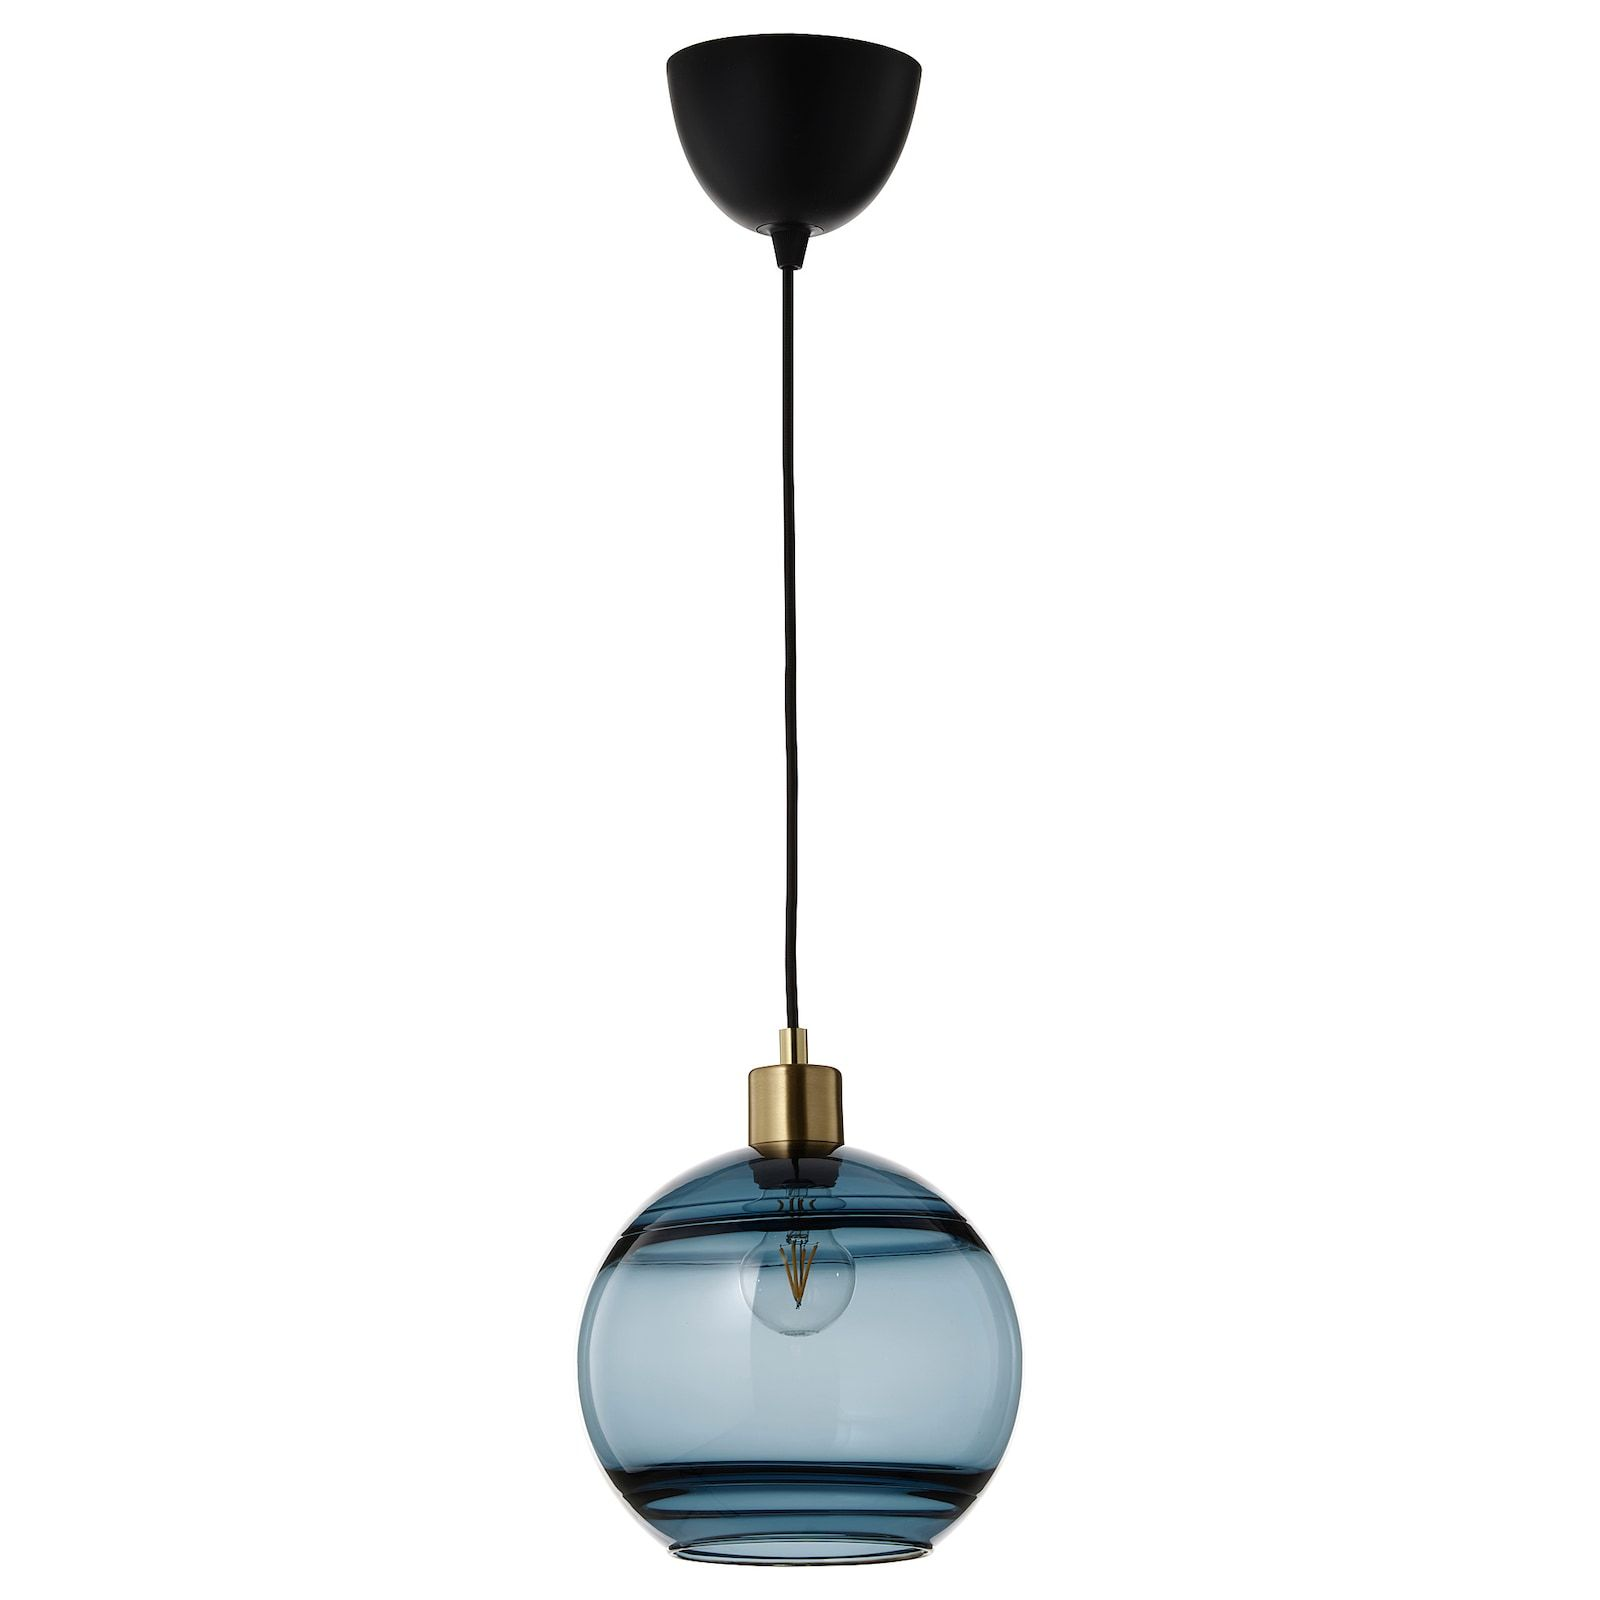 Fundshult Pendant Lamp Shade Blue Glass Lined Ikea Pendant Lamp Shade Pendant Lamp Lamp Shade